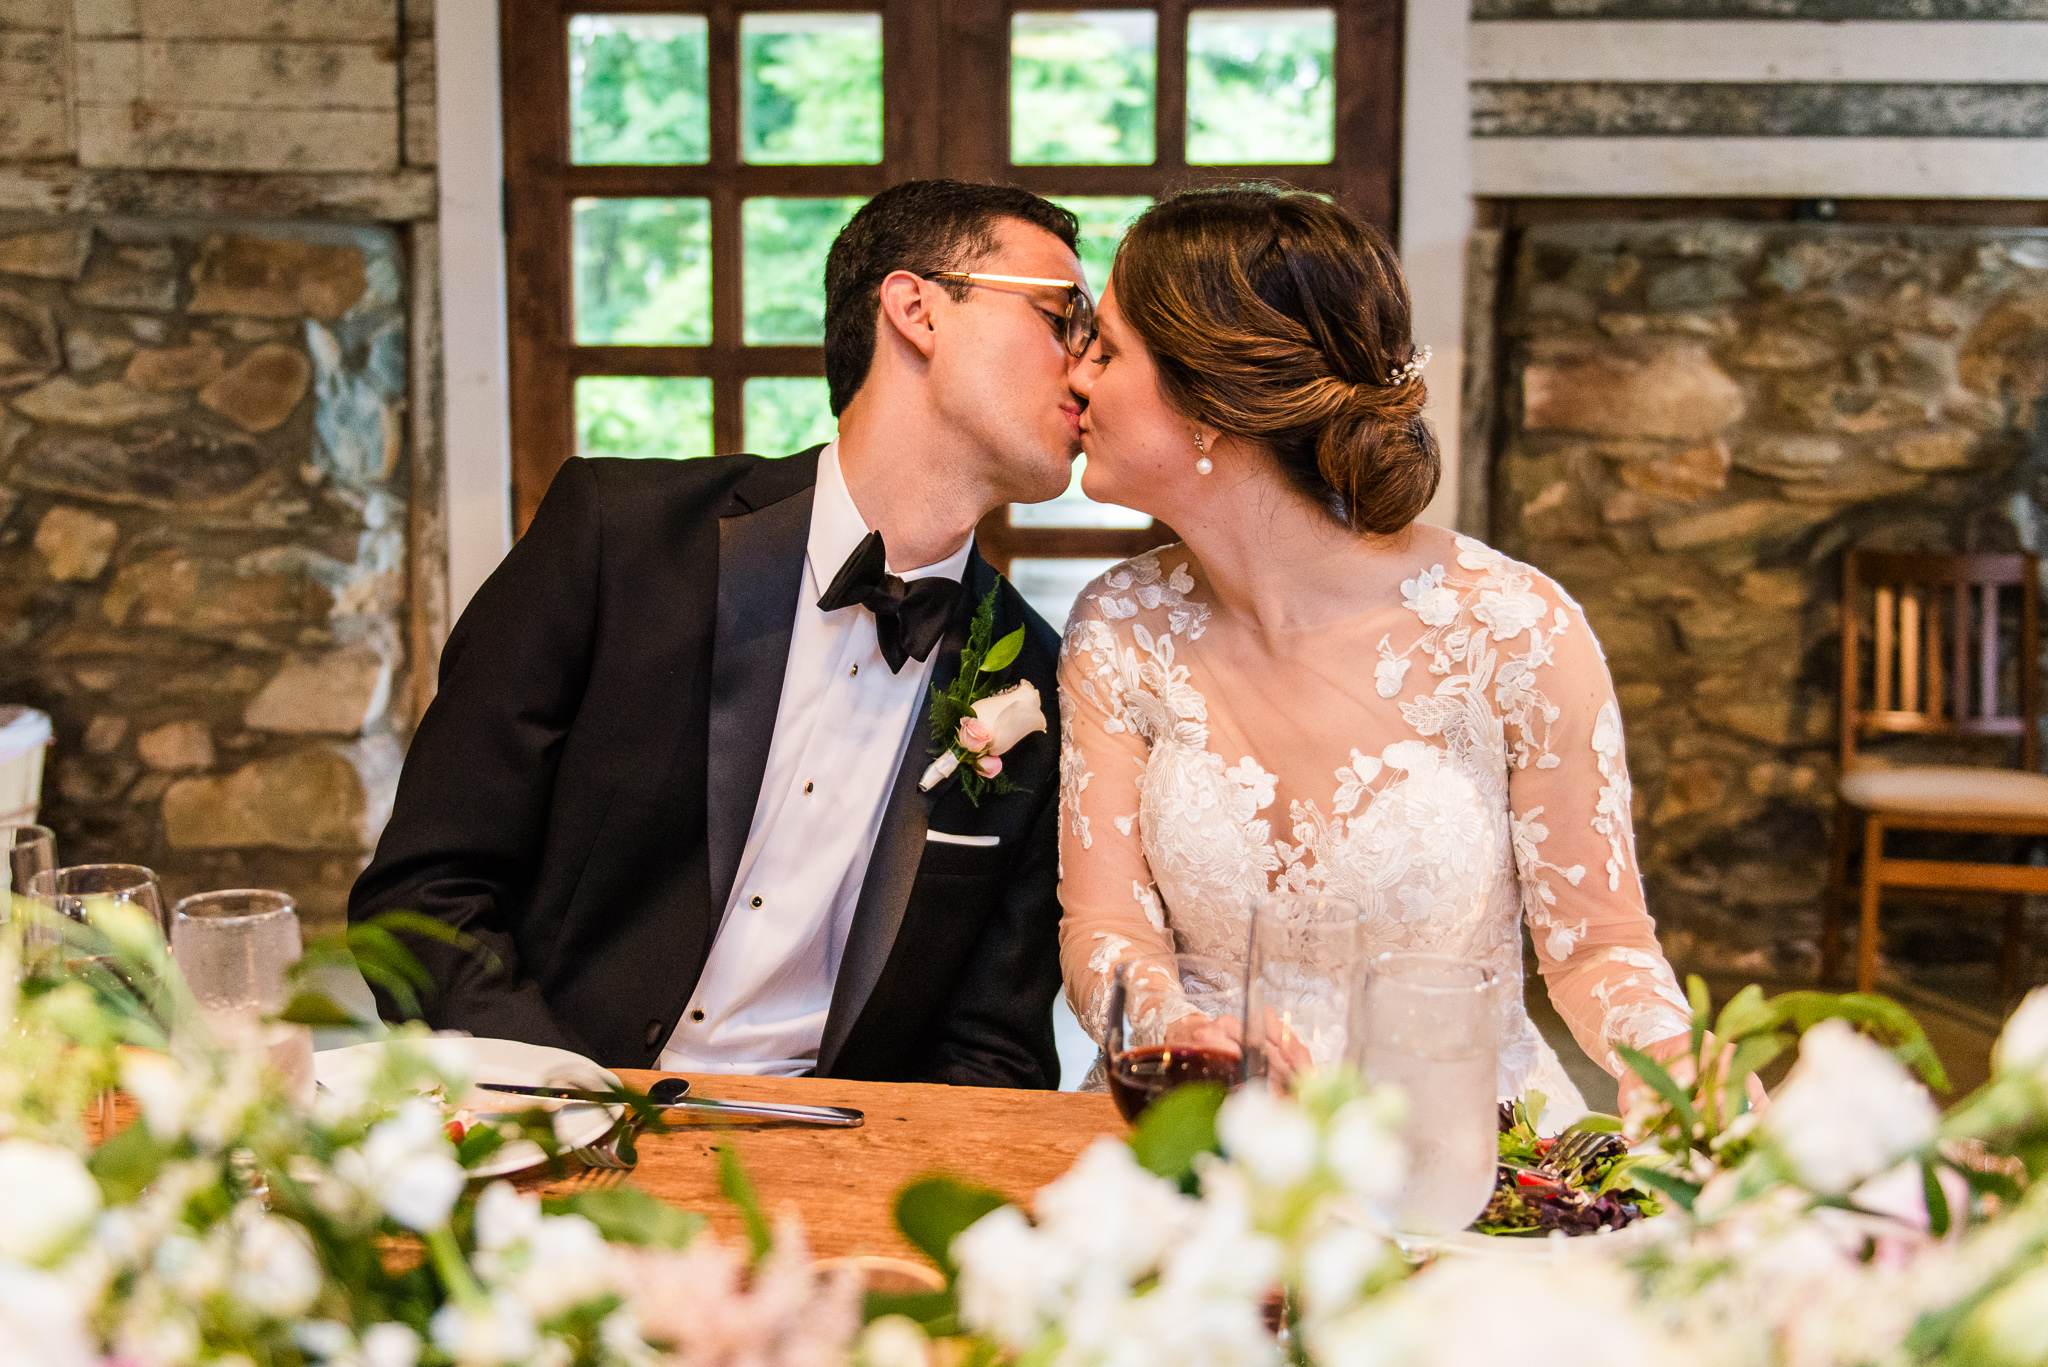 A bride and groom share a kiss at the sweetheart table during their wedding reception at The Barns at Hamilton Station Vineyards in Leesburg, Northern Virginia